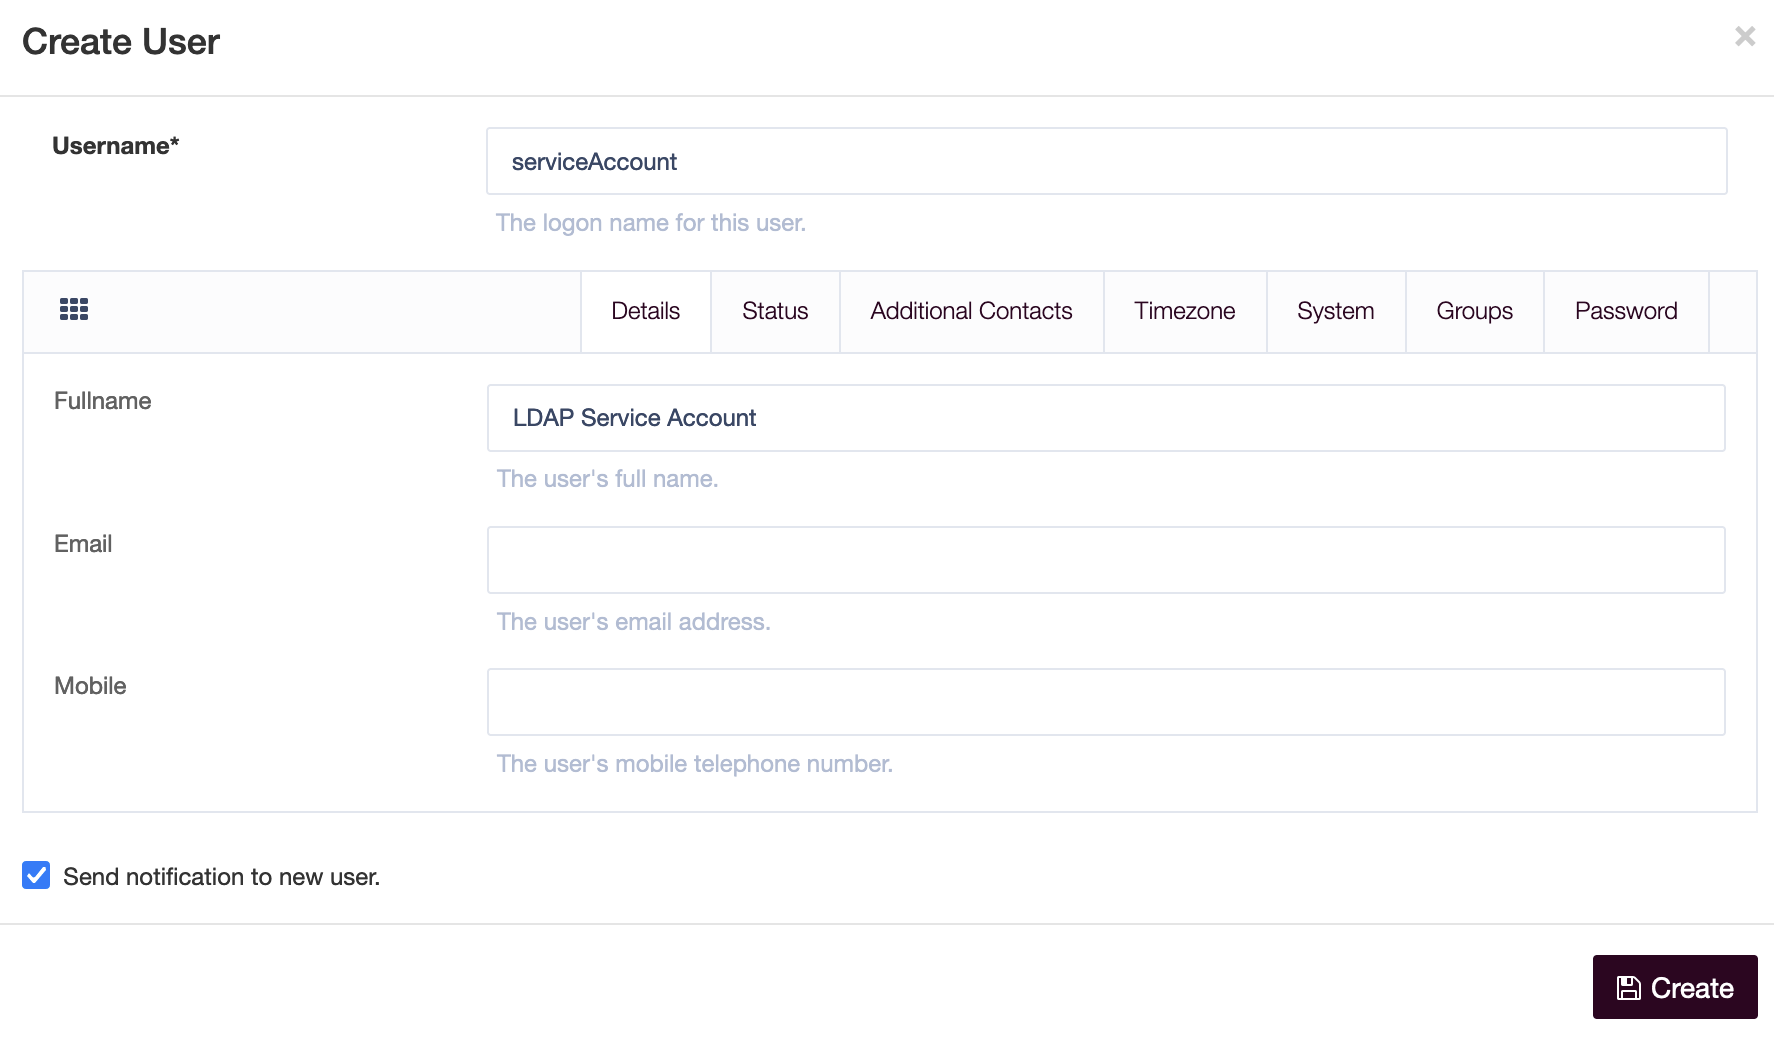 Creating the Service Account